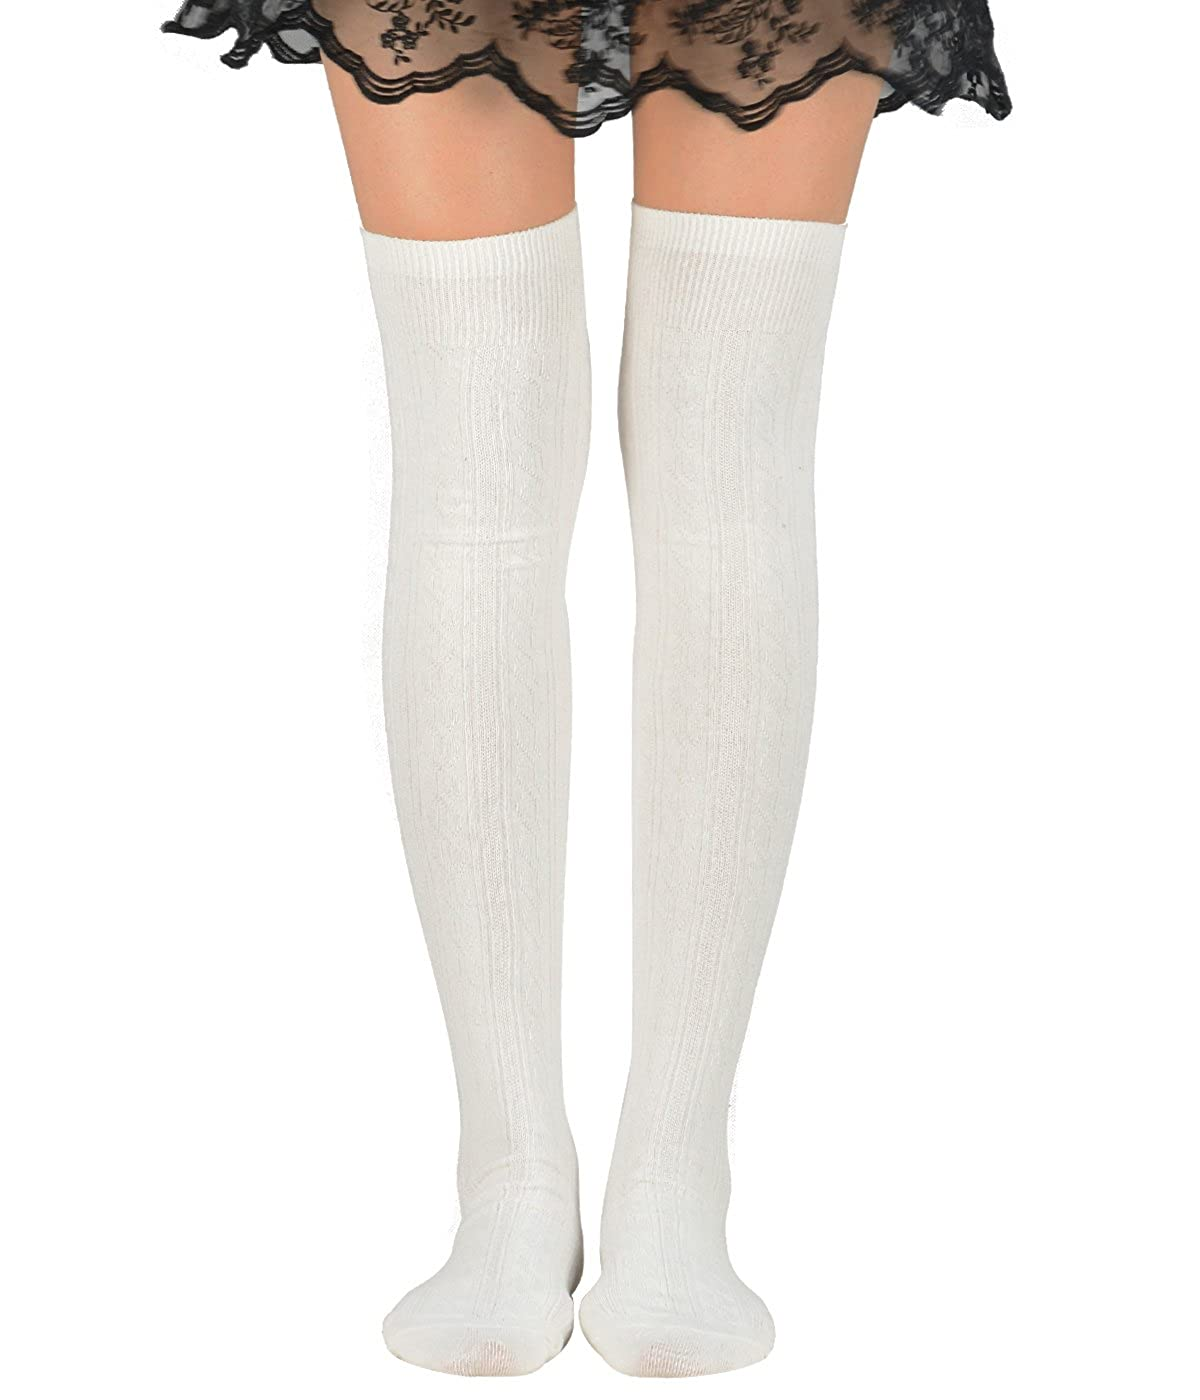 d65903929 Amazon.com  Zando Women Cotton Knit Spiral Over The Knee Thigh High Long  Stocking Socks Solid Varsity Cosplay Leg Warmers G White  Clothing